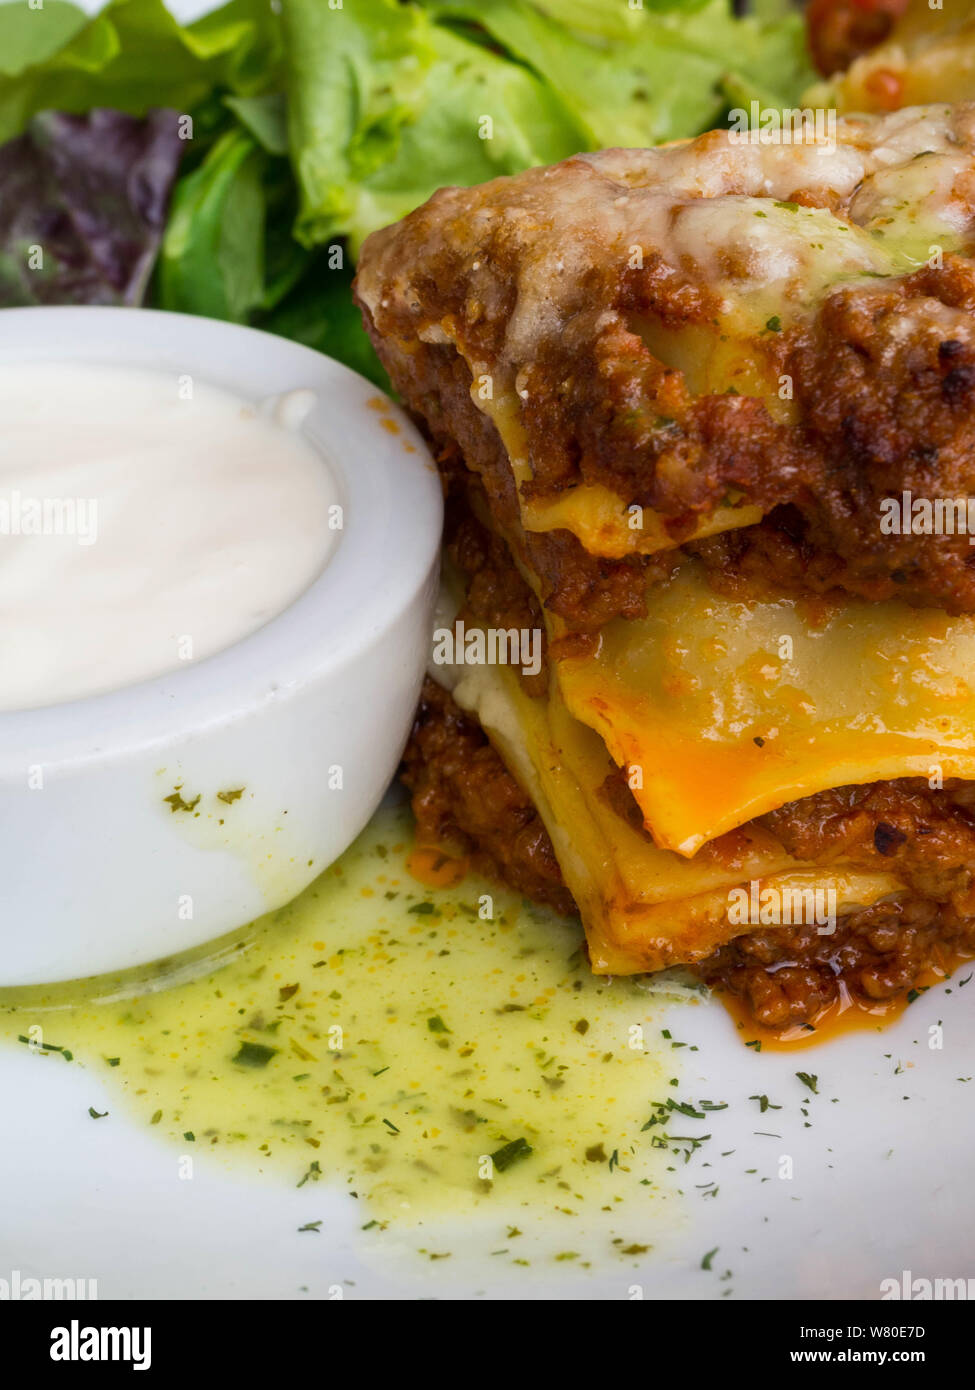 Tomato And Beef Lasagne With Cheese Layered Between Sheets